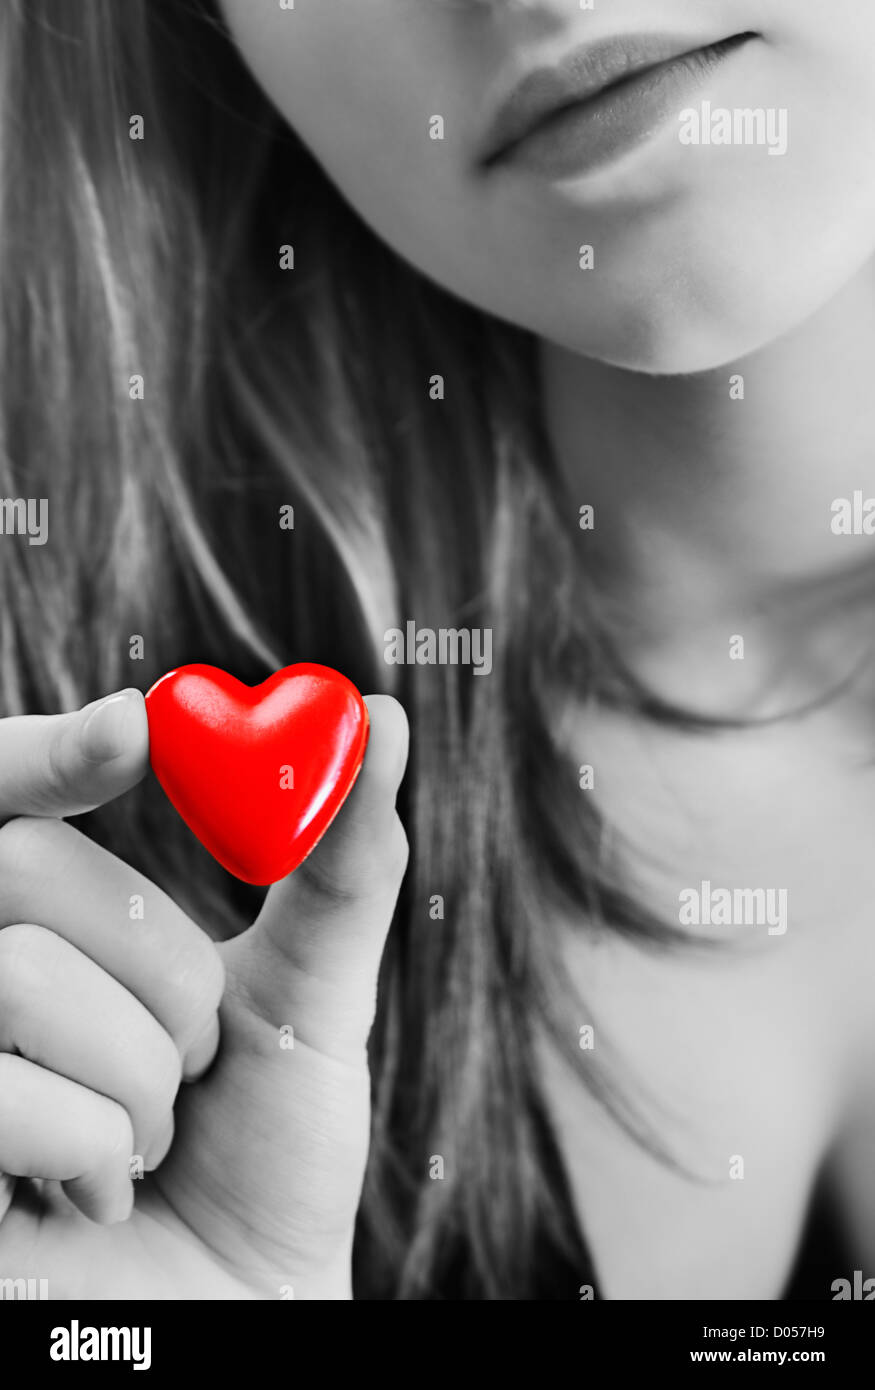 Girl holds in her hand a small red heart. Black-and-white image ...